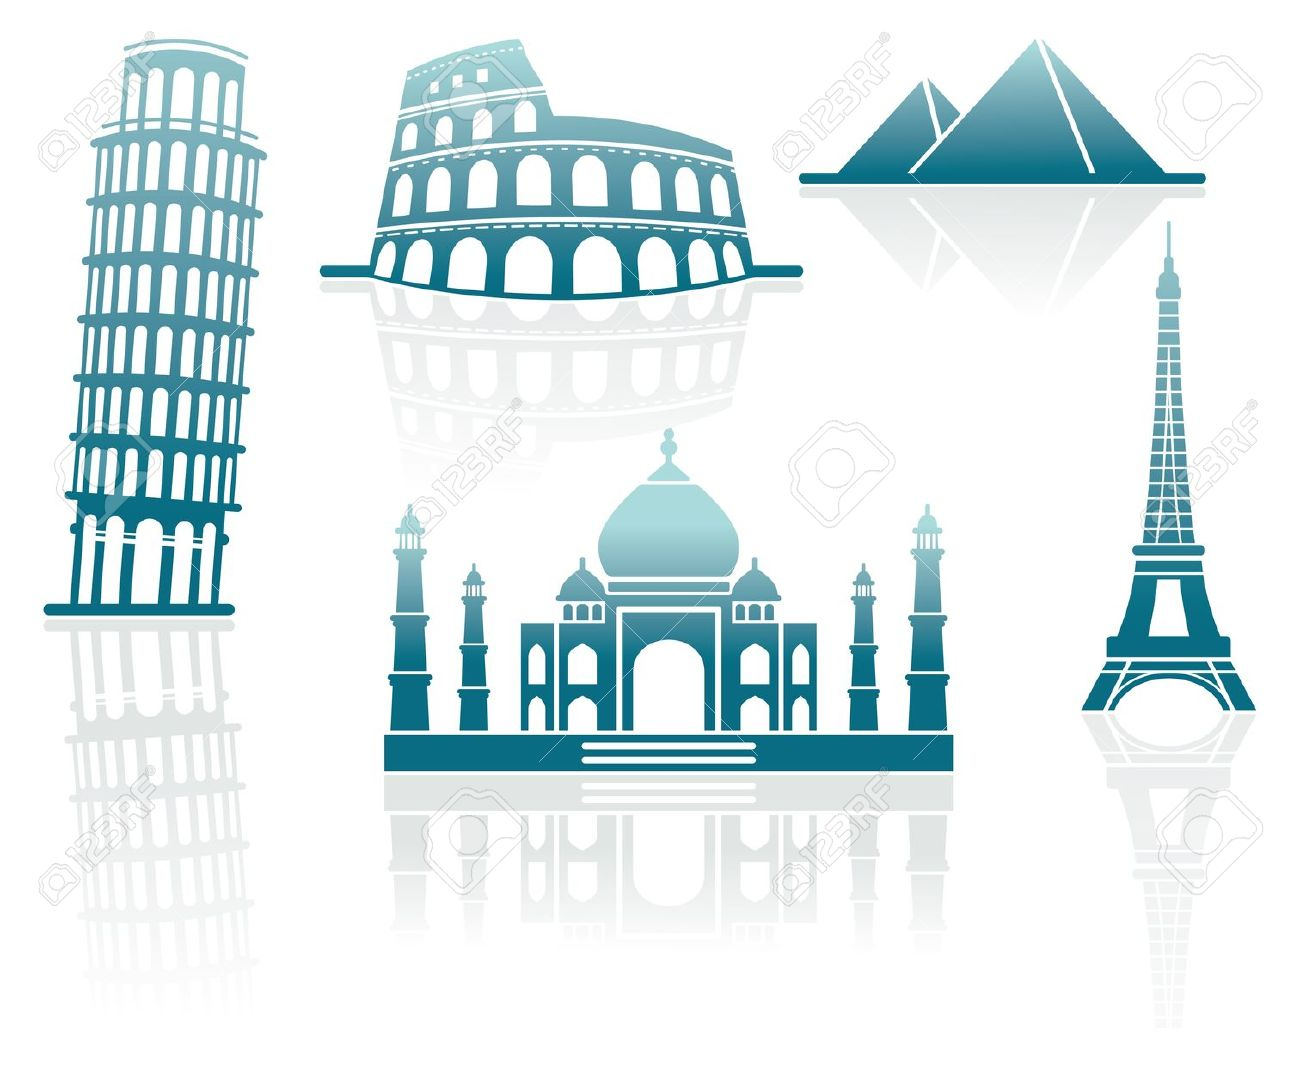 Icons Of Architectural Monuments Royalty Free Cliparts, Vectors.